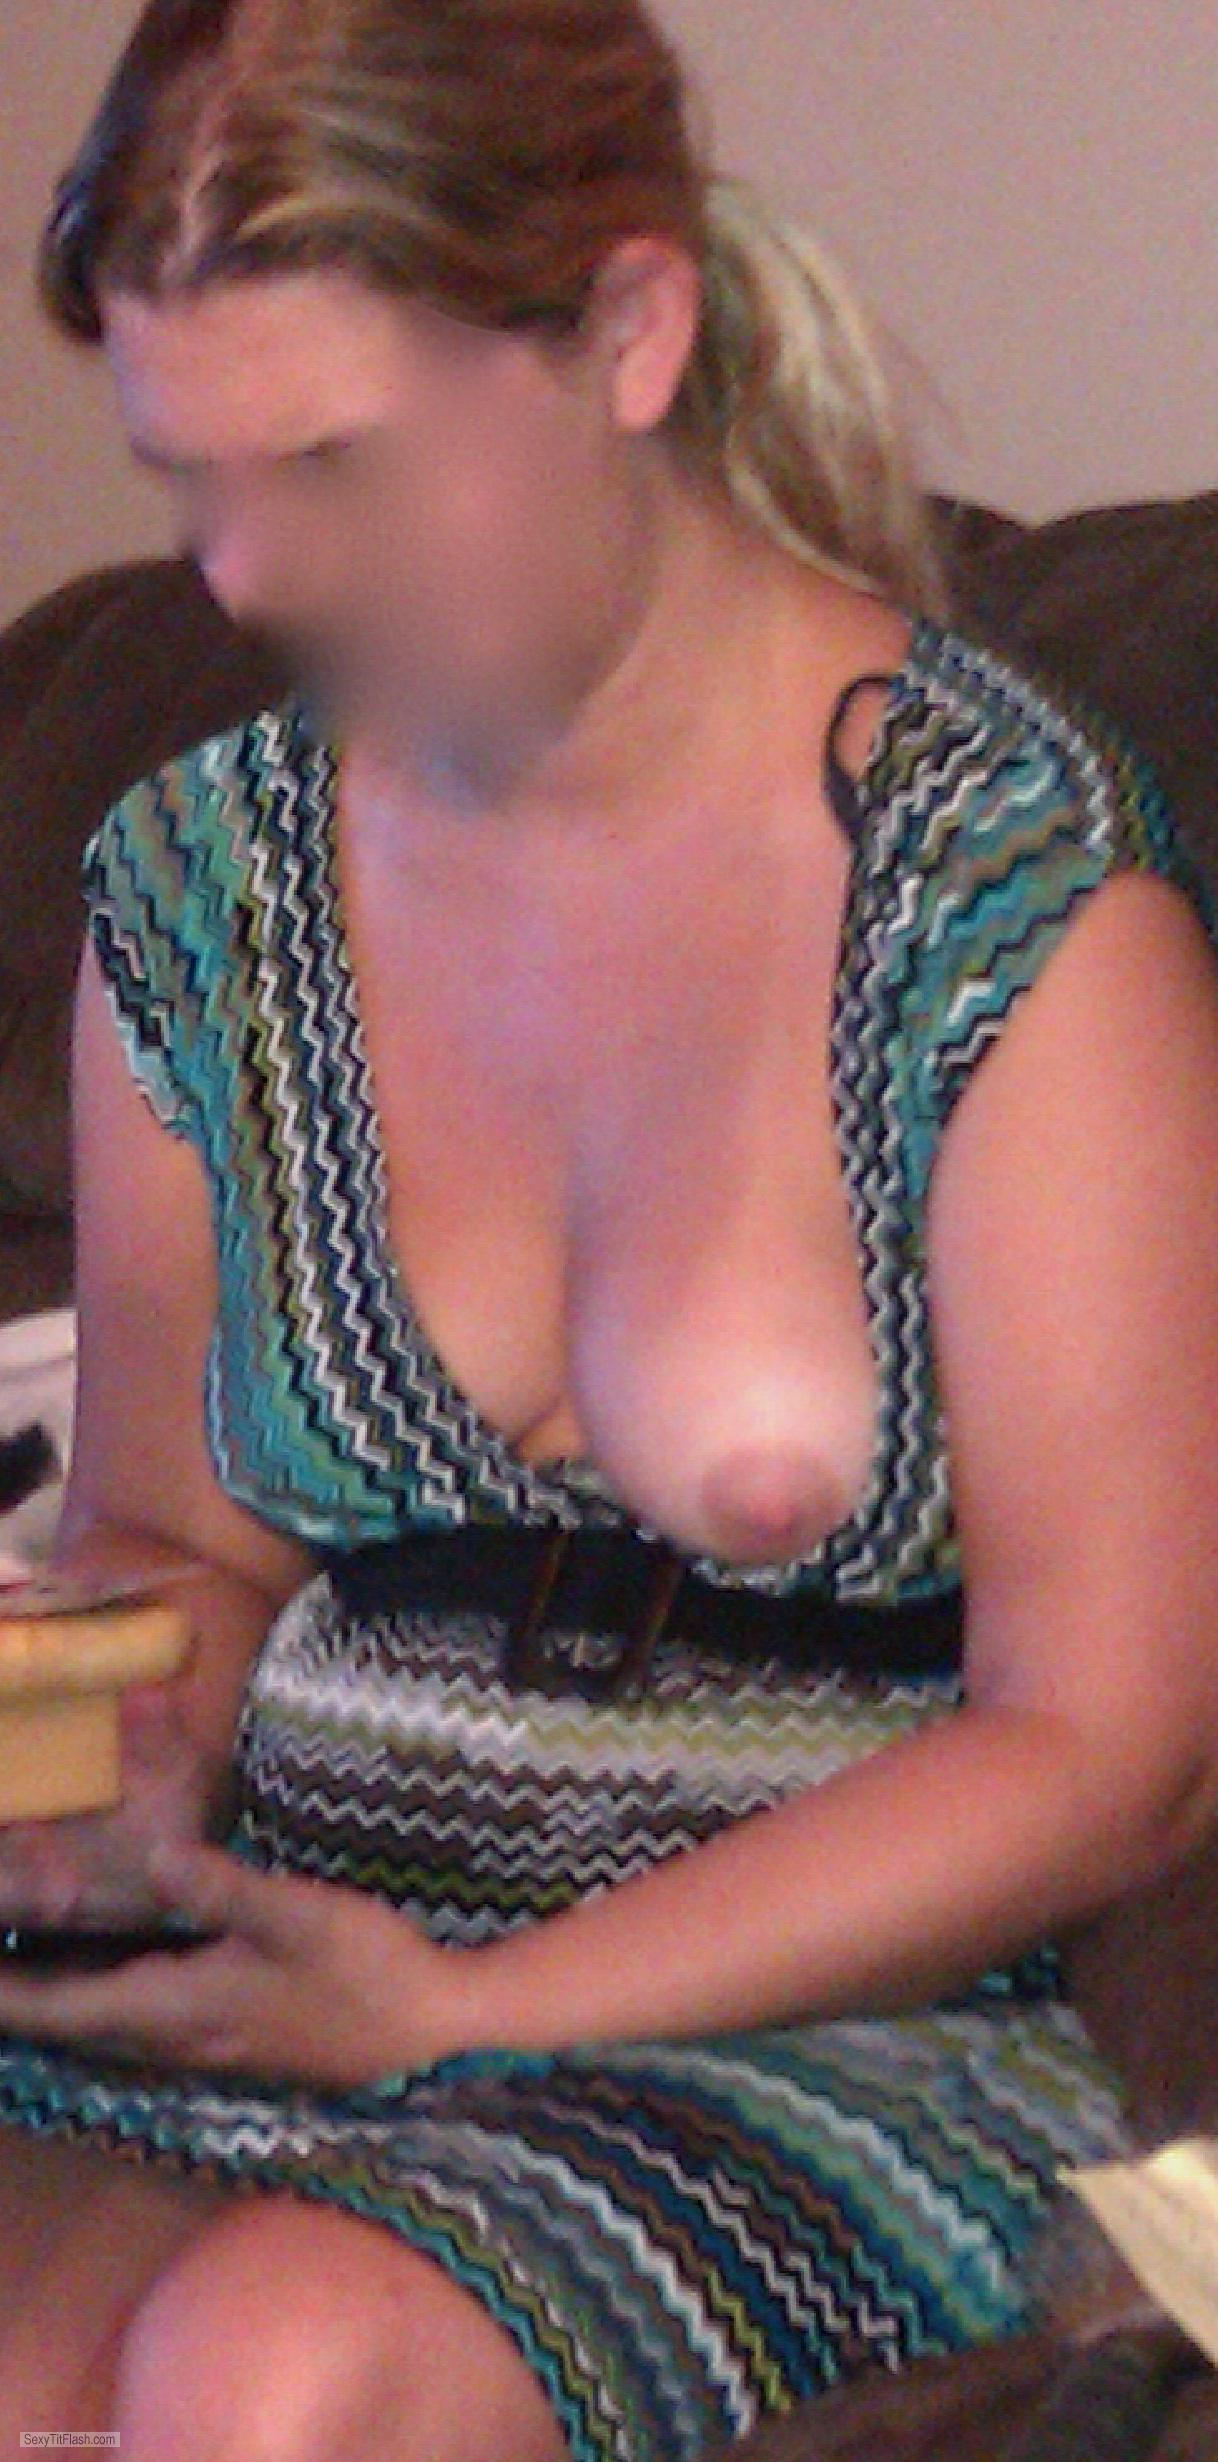 Tit Flash: Wife's Small Tits - Tiffani from United States